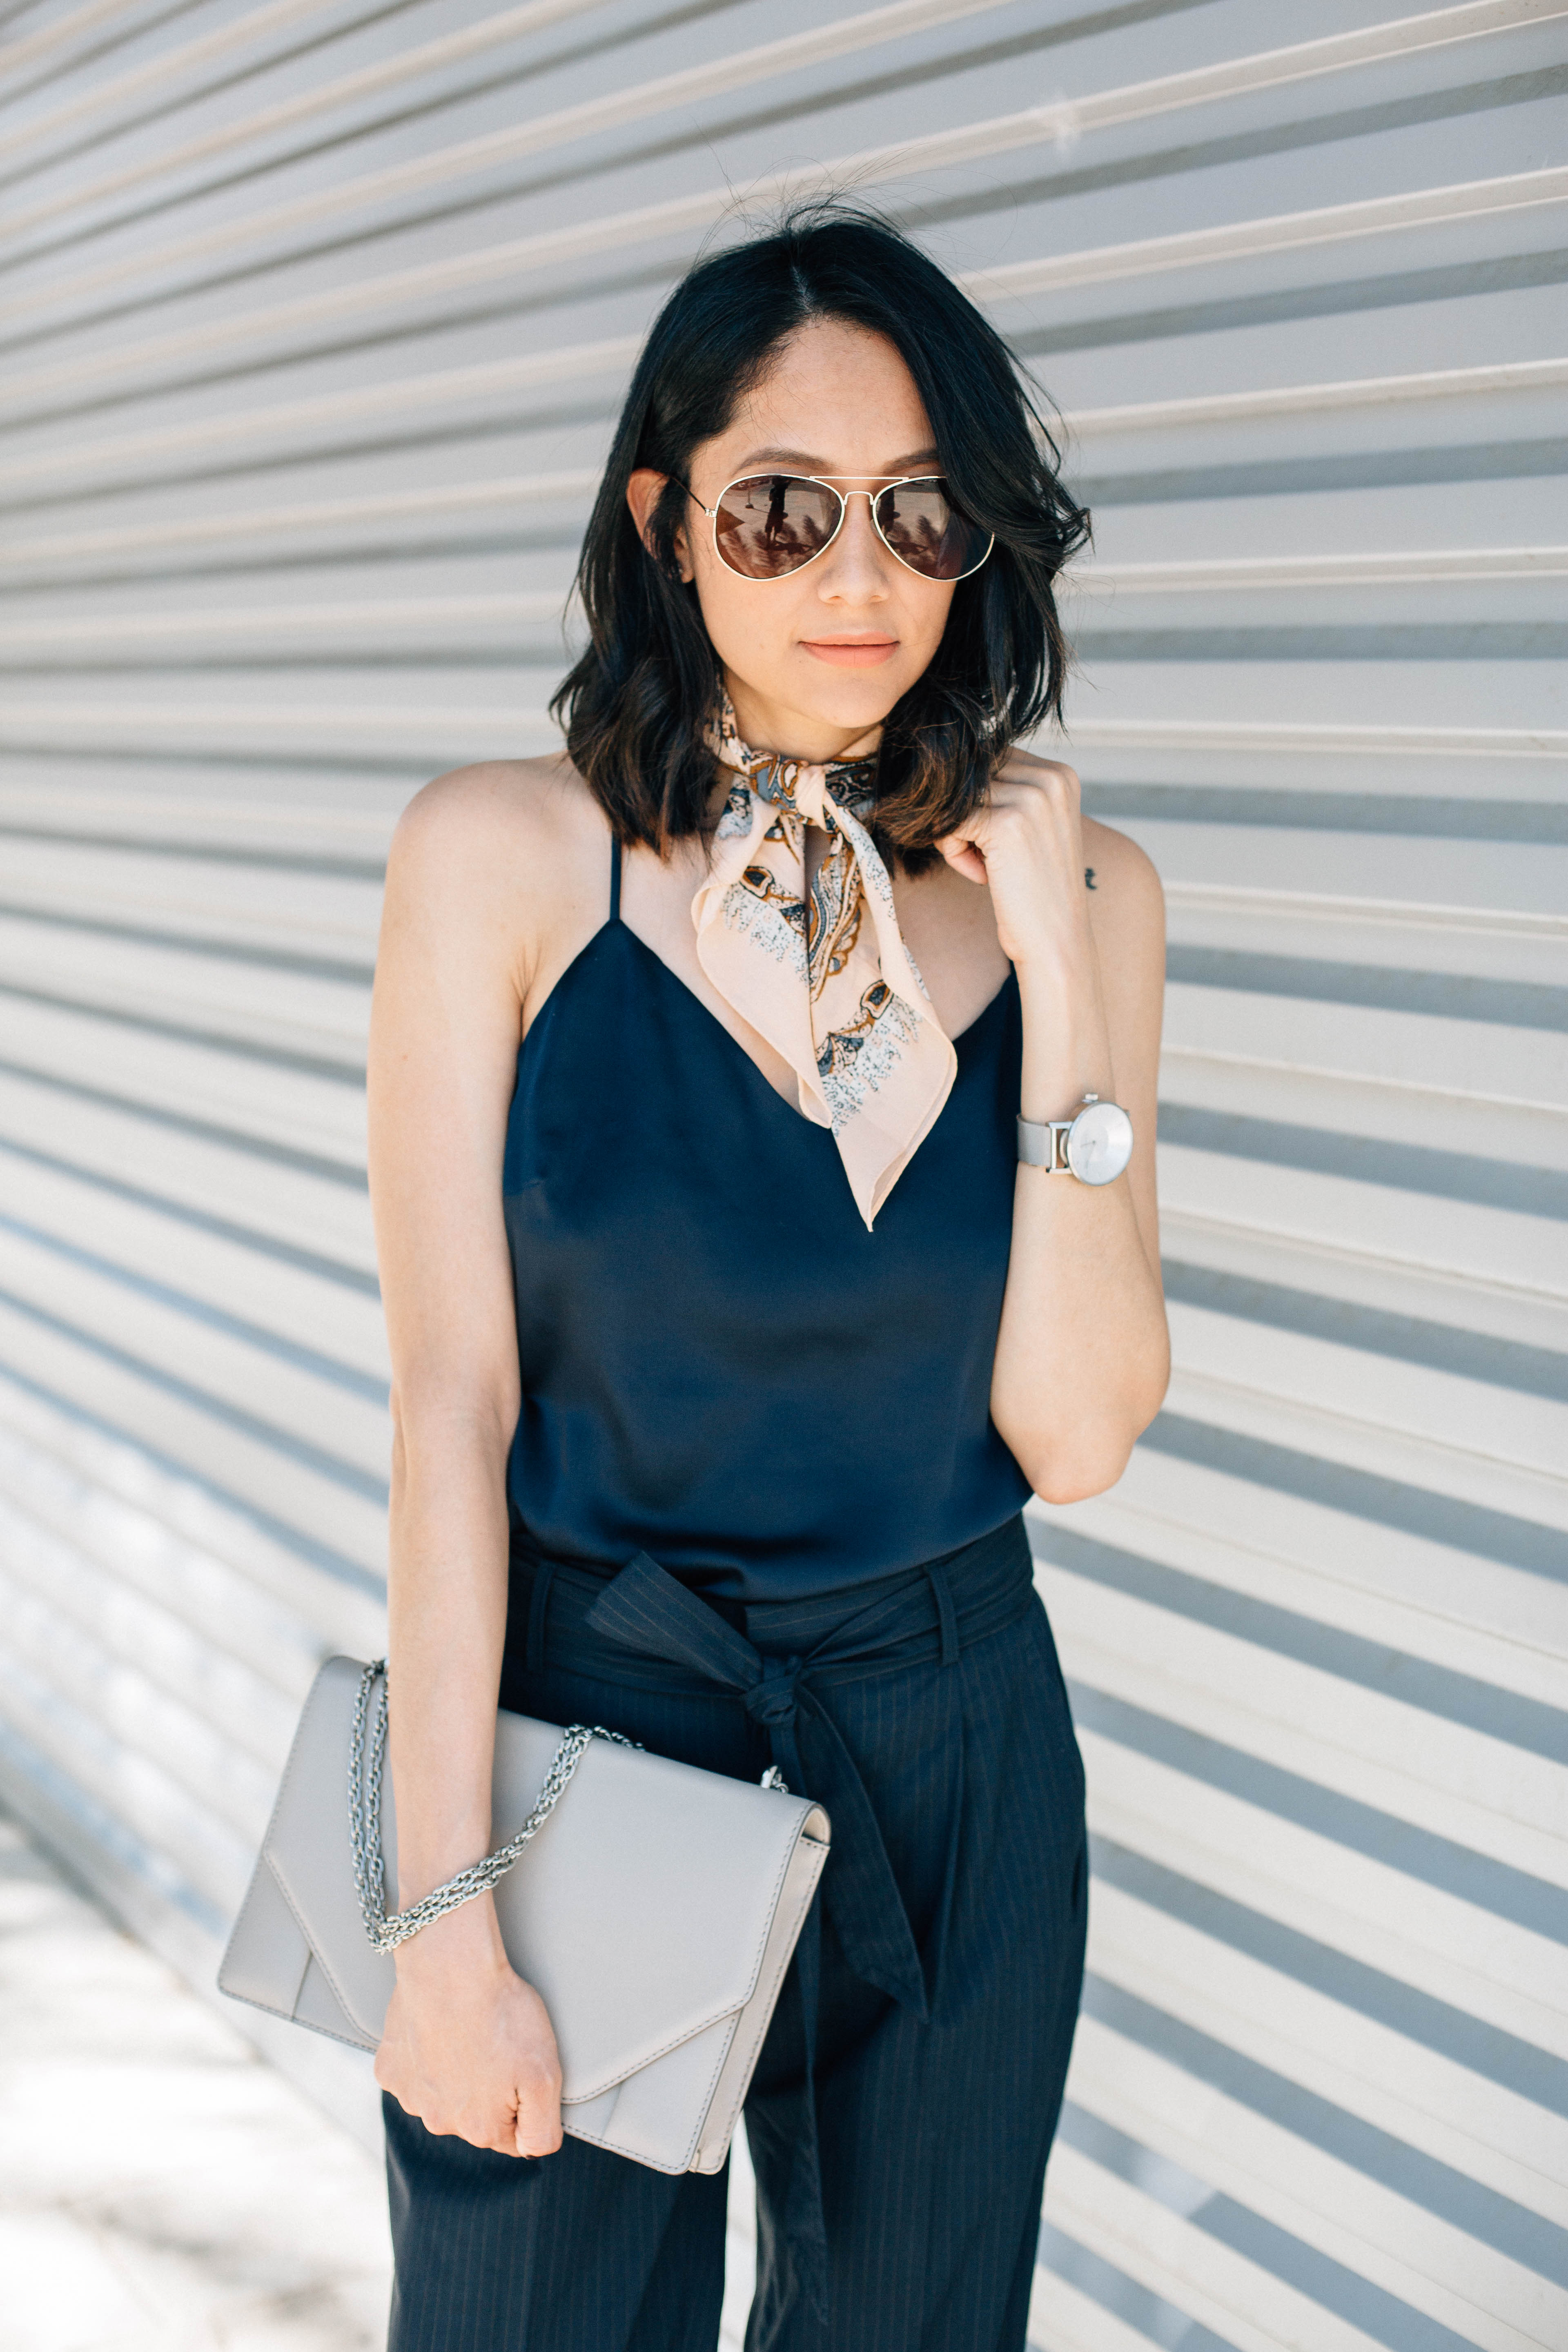 Chic pants, silk camisole & neckerchief